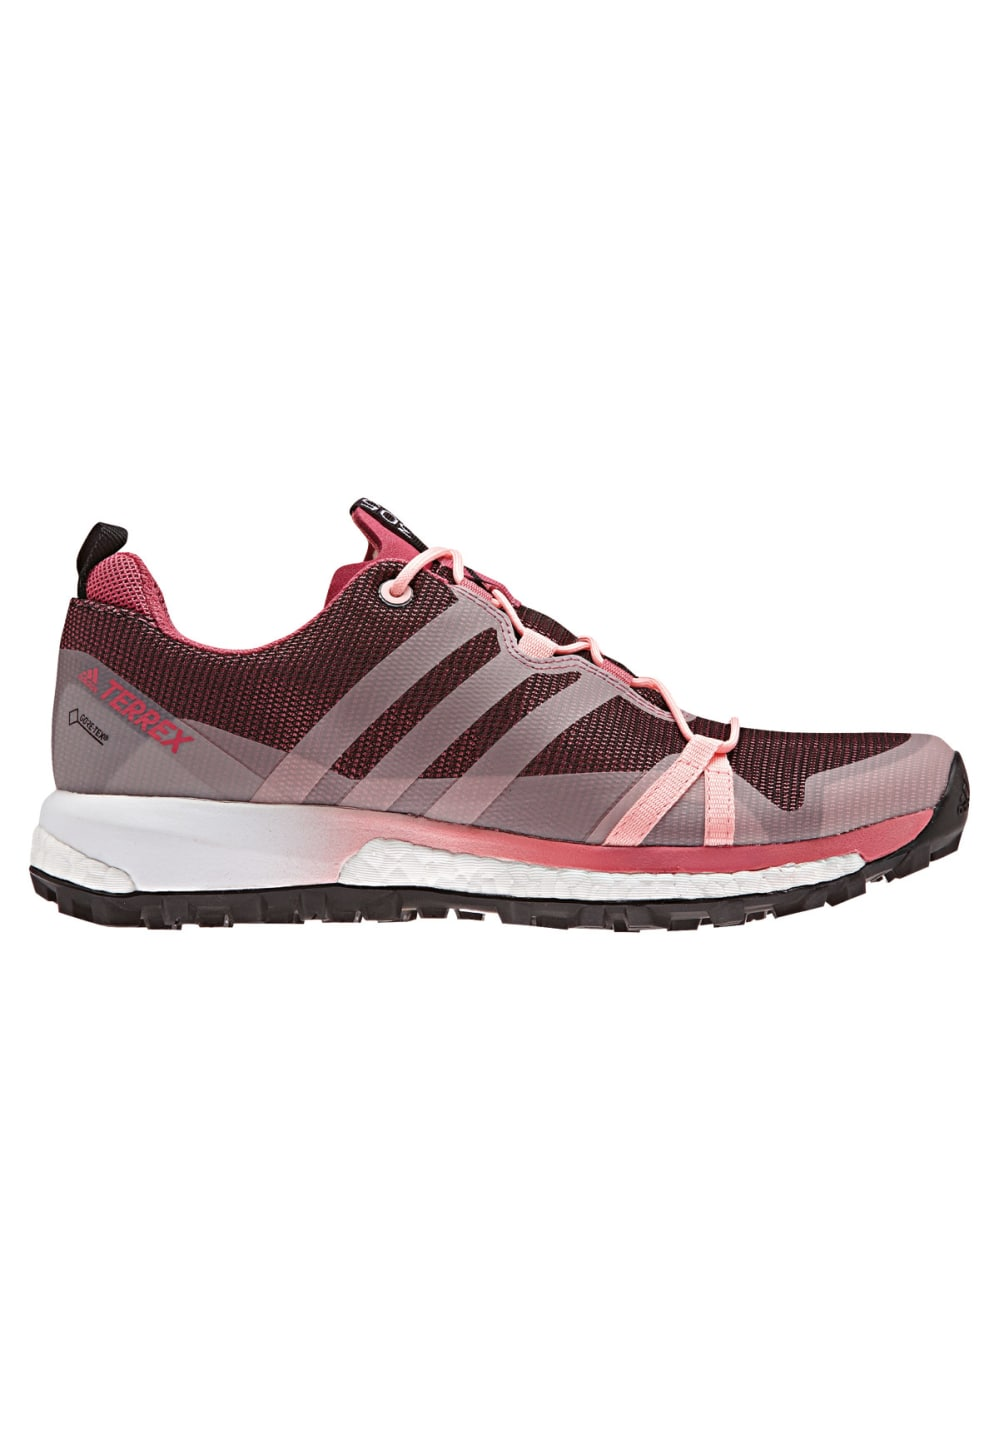 adidas Terrex Agravic GTX - Outdoor shoes for Women - Pink